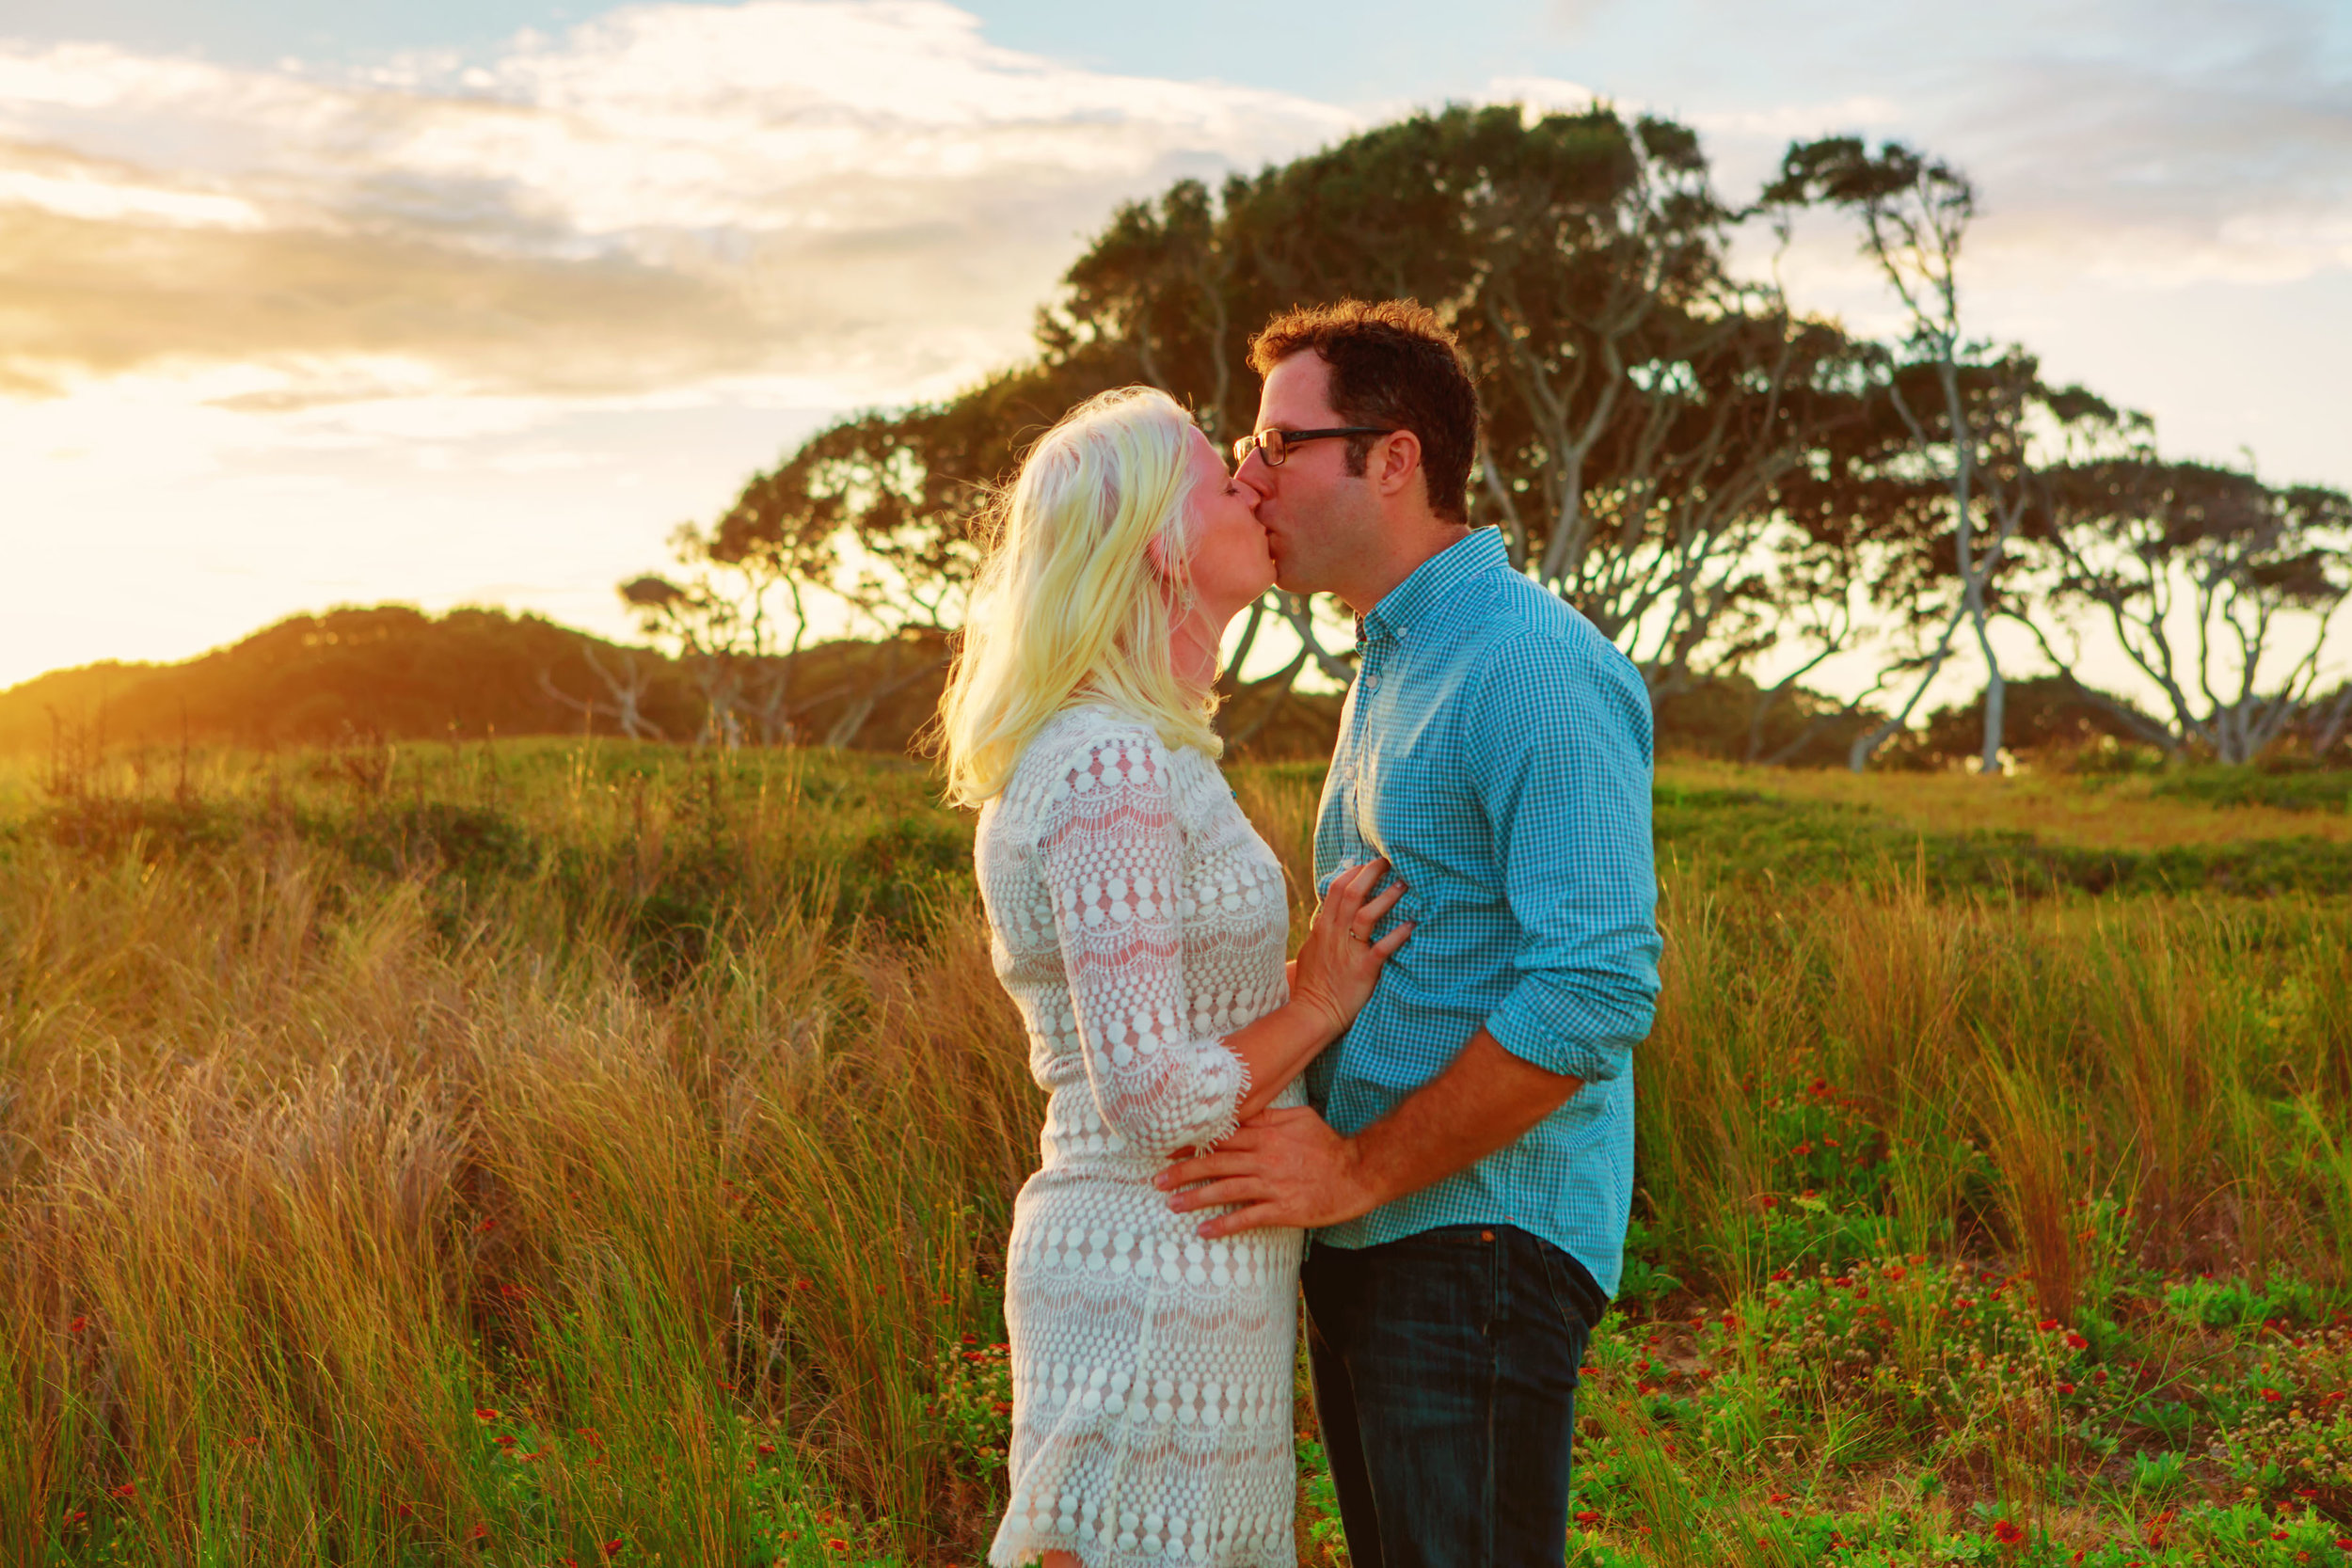 Fort_Fisher_Photographer_Engagement_Tiffany_Abruzzo_Photography_22.jpg